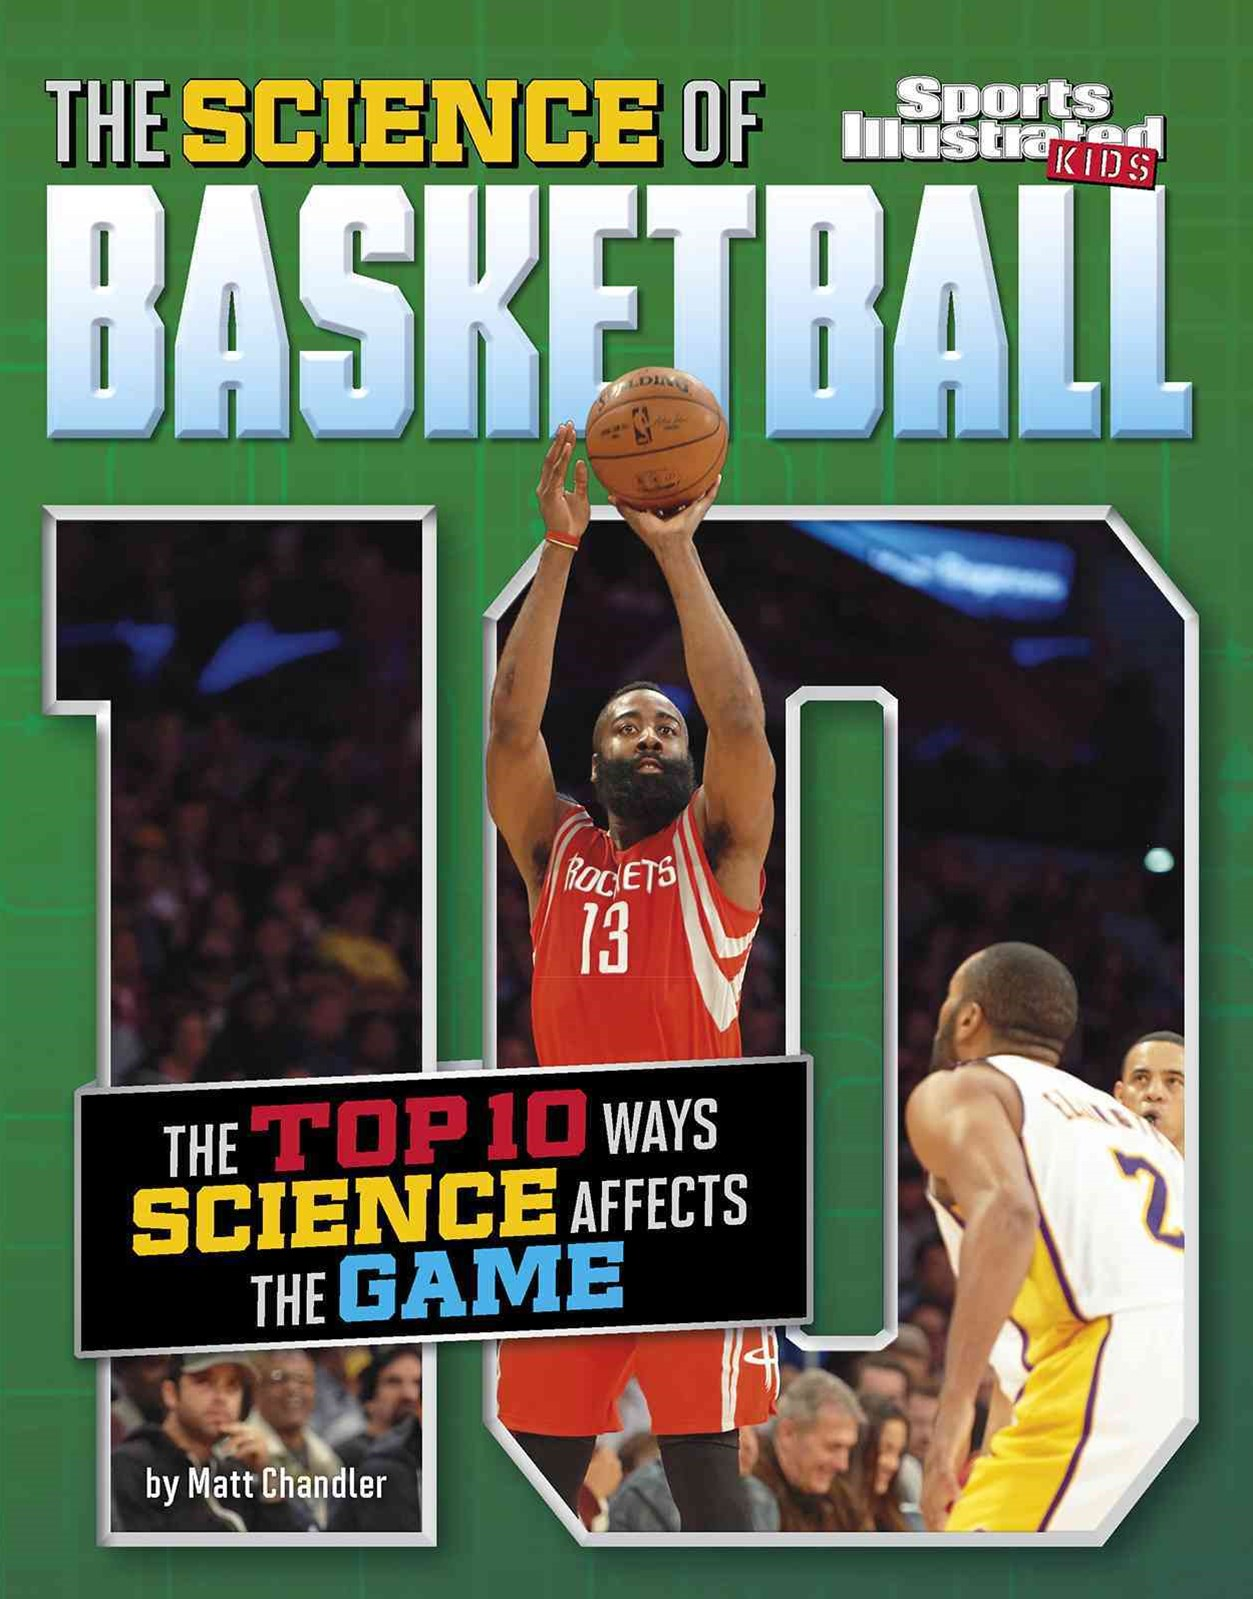 The Science of Basketball